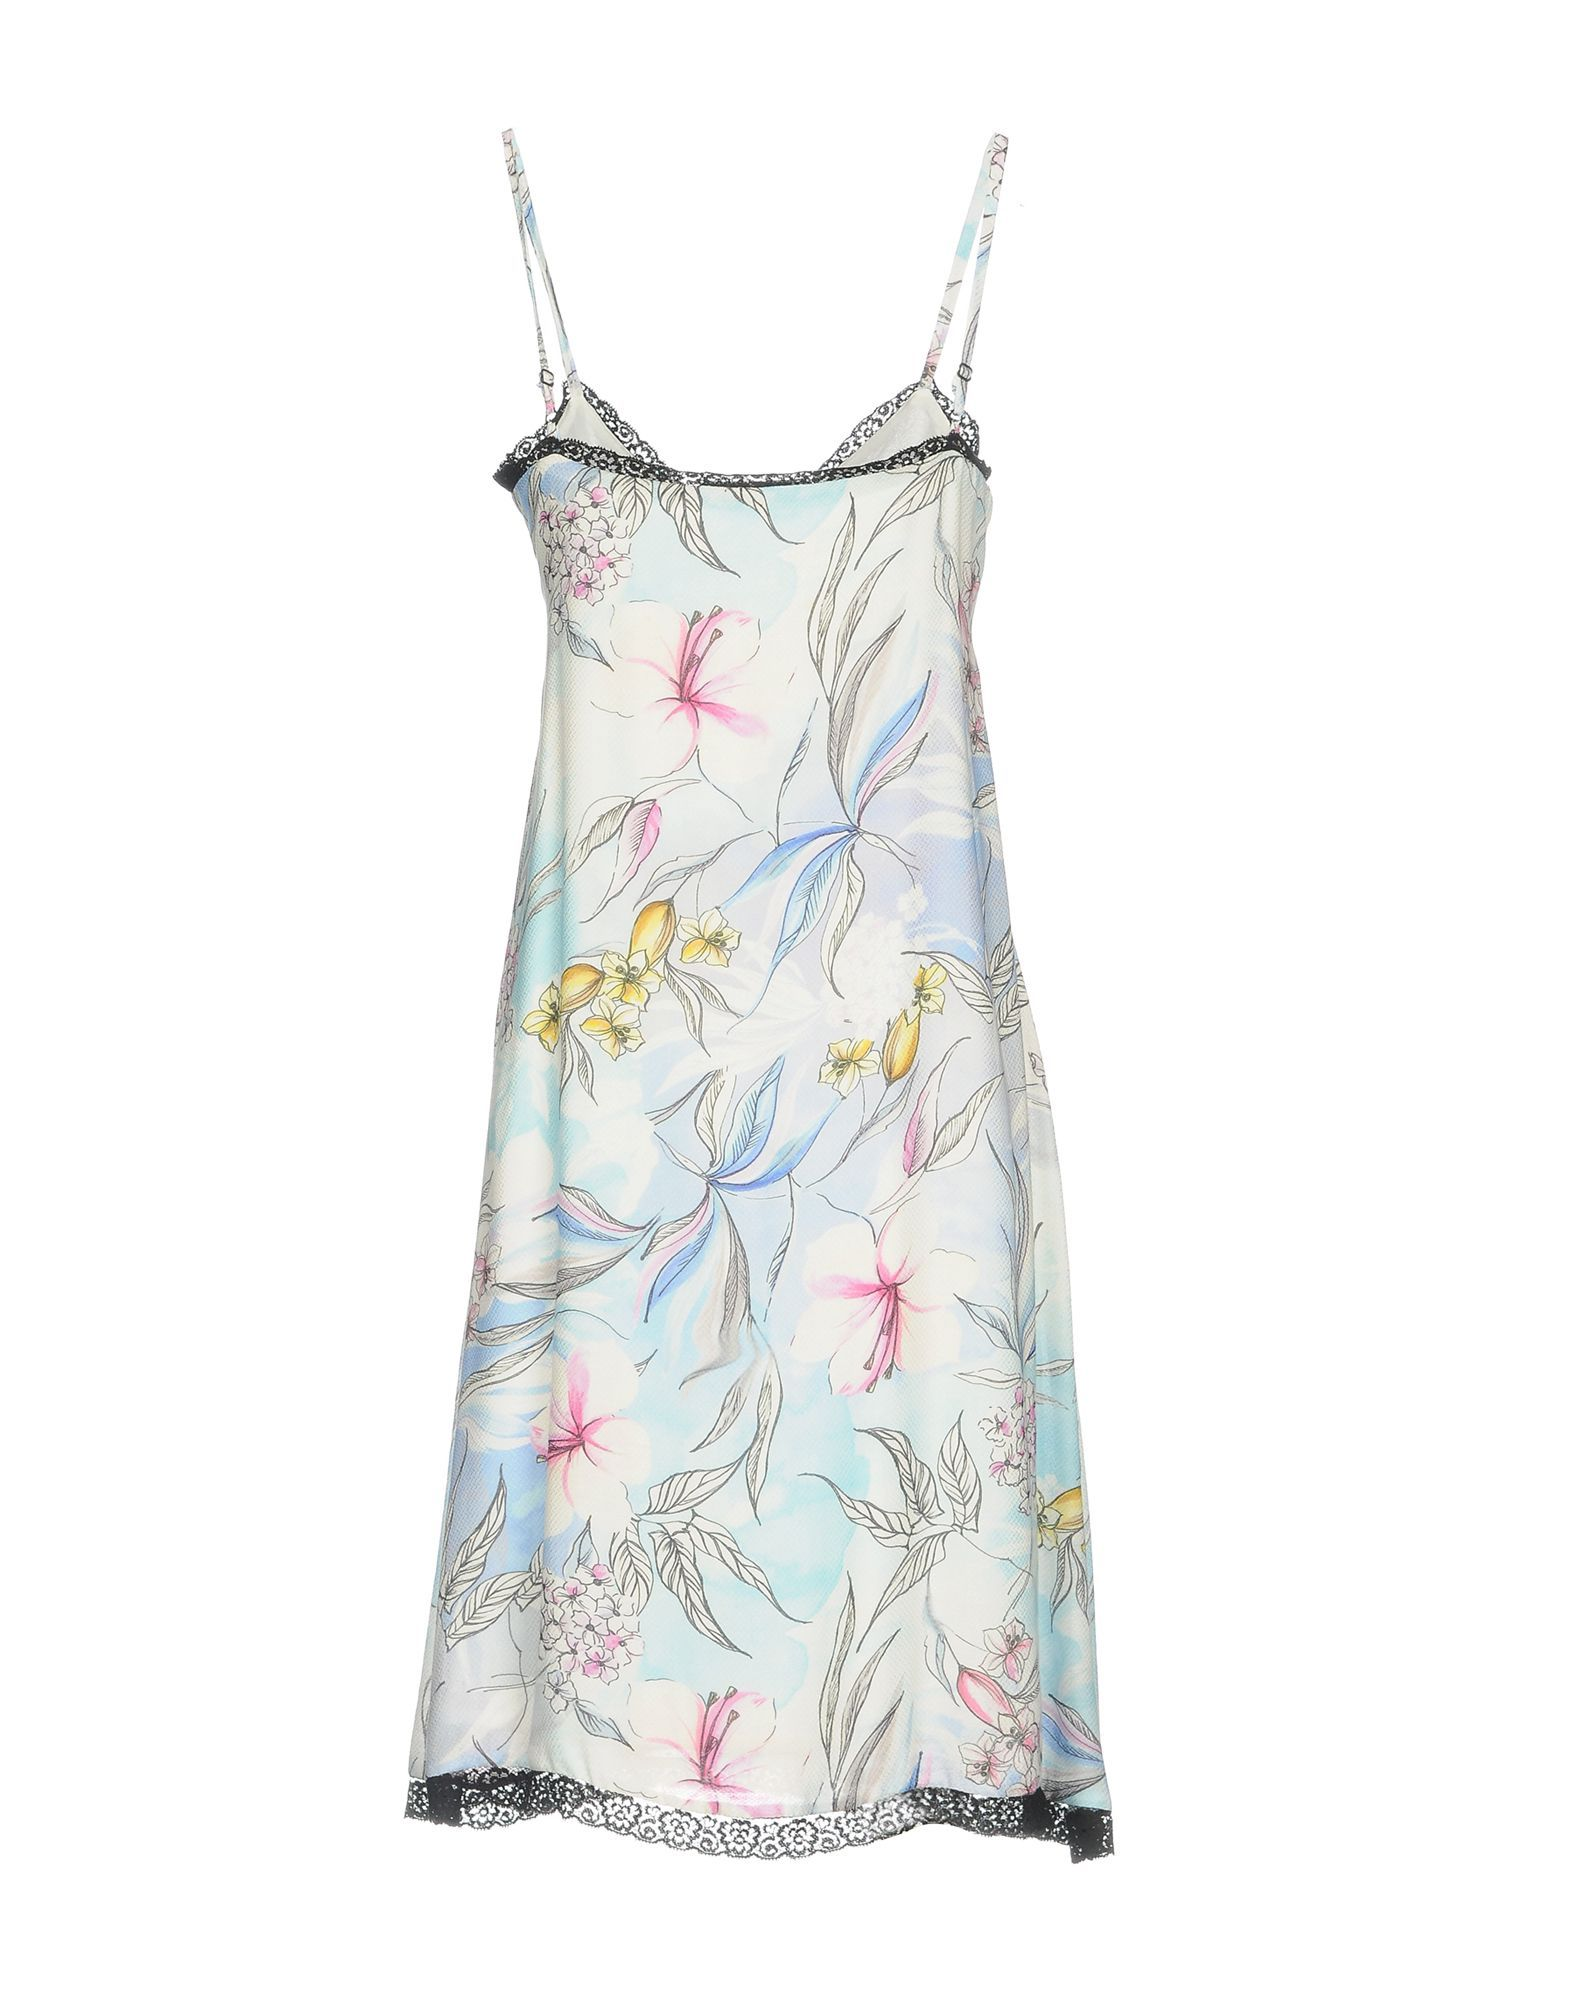 Anna Rachele Jeans Collection White Print Camisole Dress